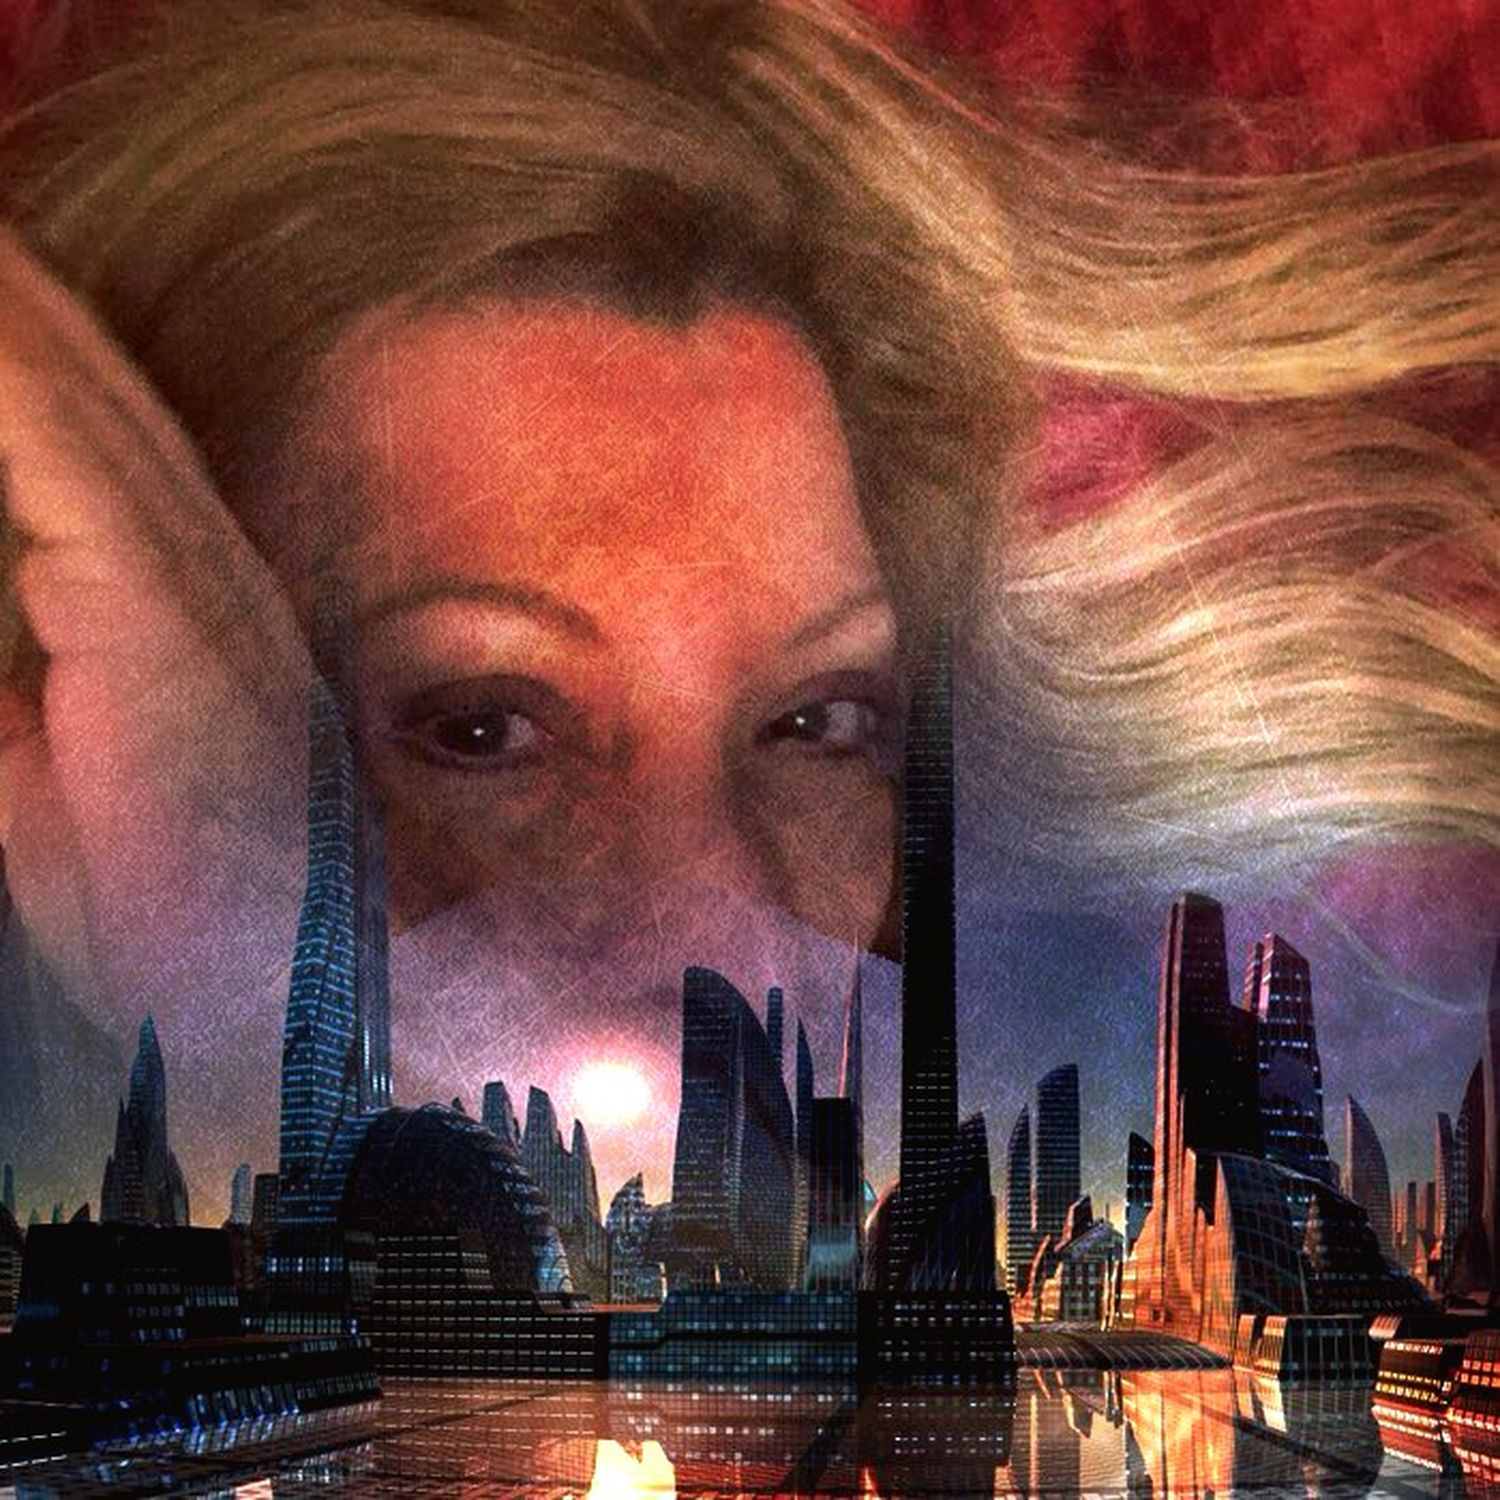 Hope to see this new world that's coming with new life ahead. Capturing Movement Abstractions In Colors IPhoneArtism Abstract Me NEM Self Portrait Of A Woman My Smartphone Life Falling Orbs From The Sky Make Magic Happen Looking Into The Future